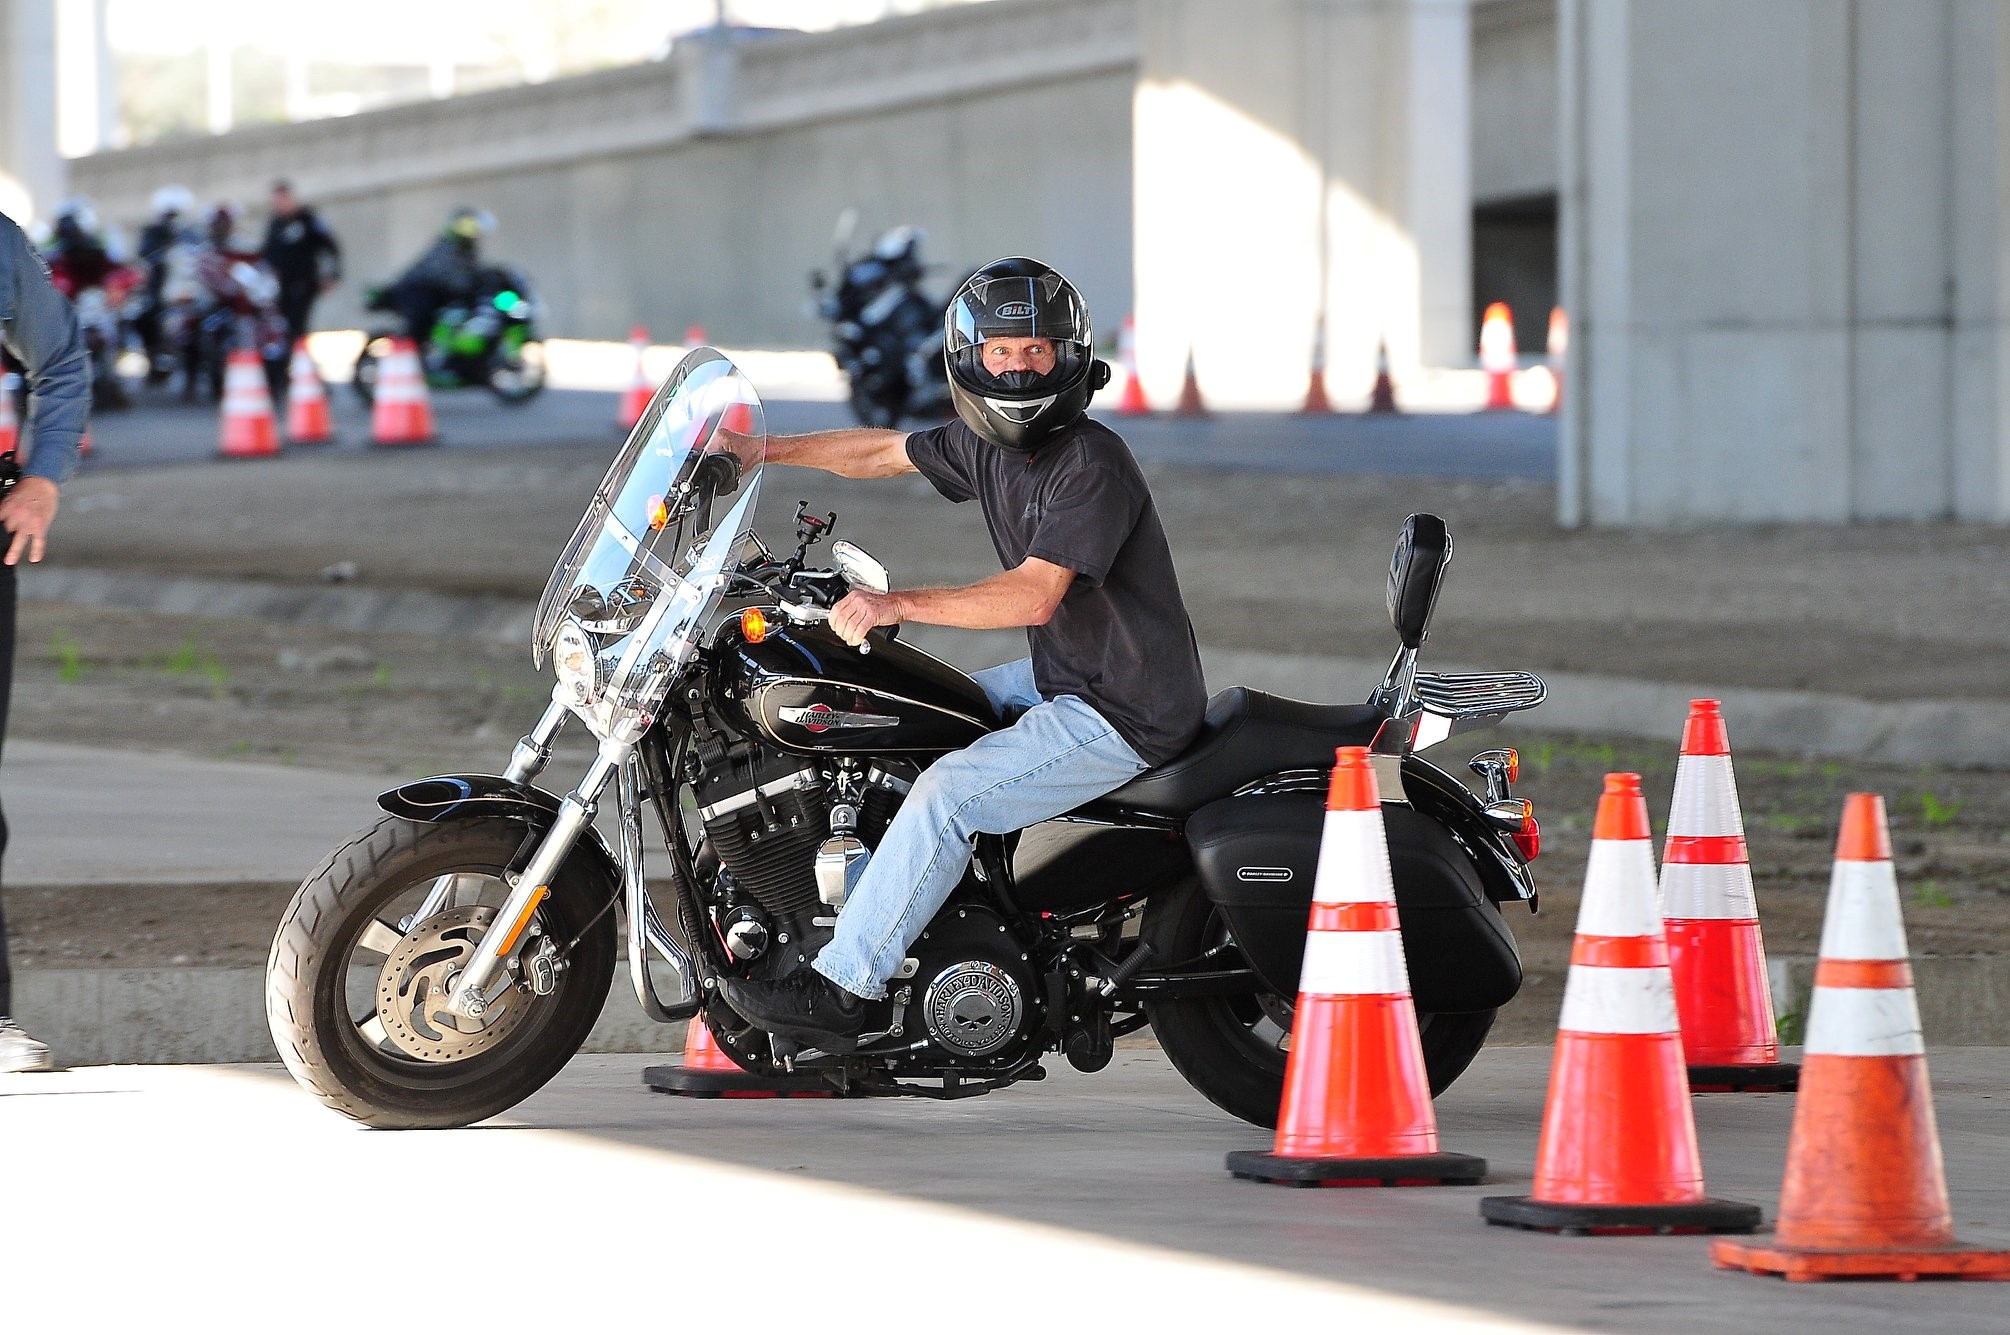 Image of motorcycle rider